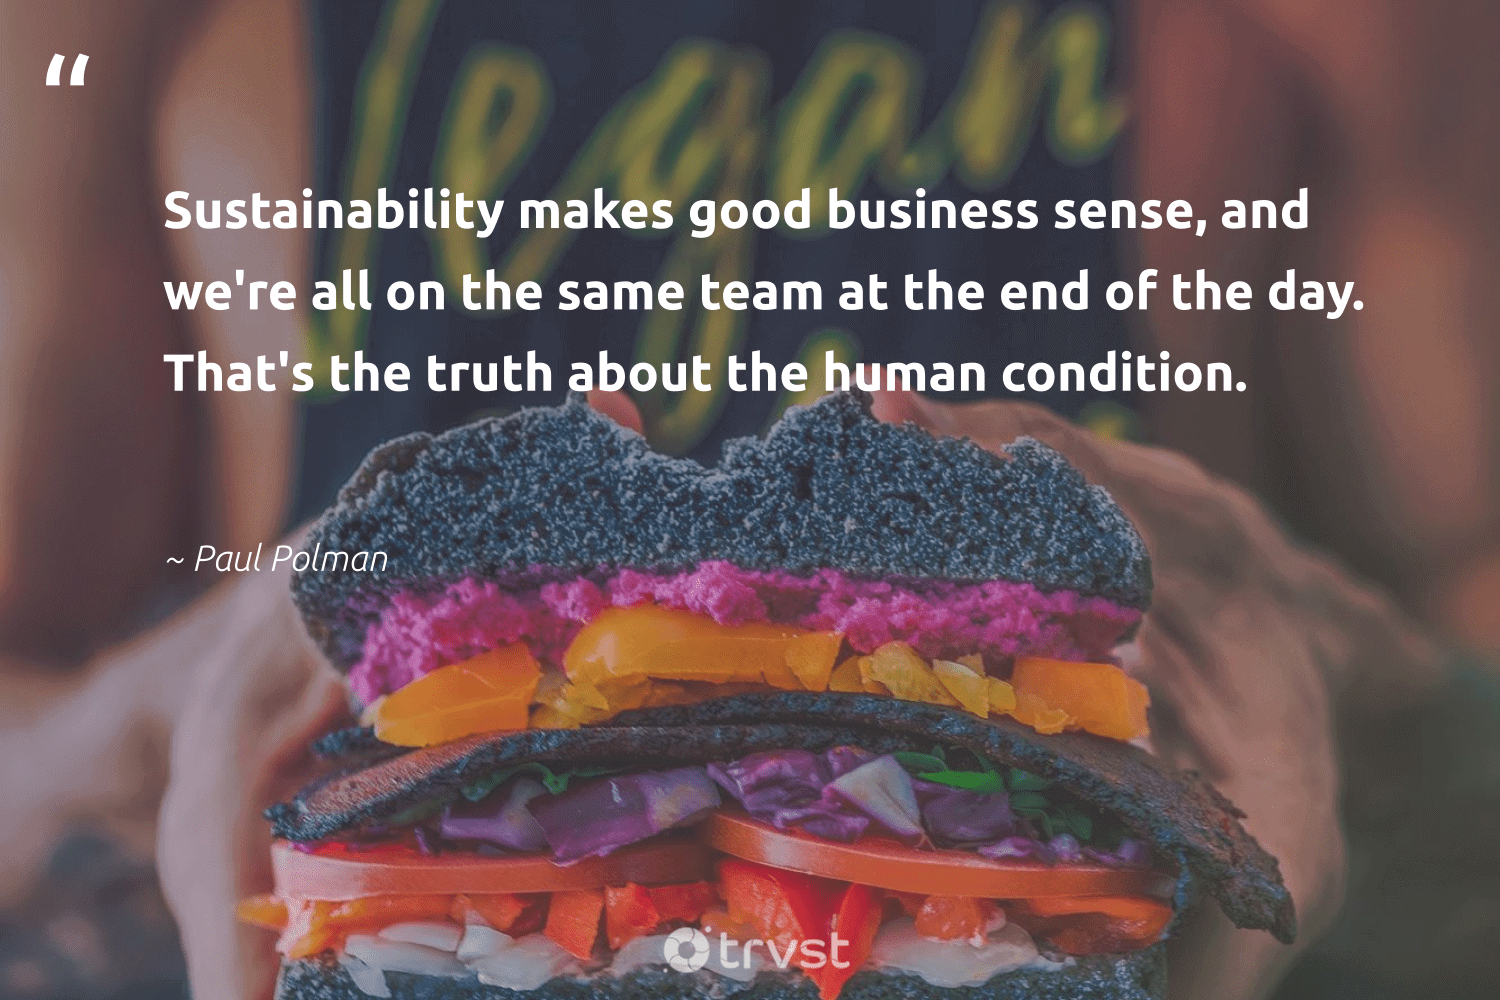 """""""Sustainability makes good business sense, and we're all on the same team at the end of the day. That's the truth about the human condition.""""  - Paul Polman #trvst #quotes #sustainability #truth #ecofriendly #greenliving #bethechange #takeaction #sustainableliving #green #fashion #collectiveaction"""